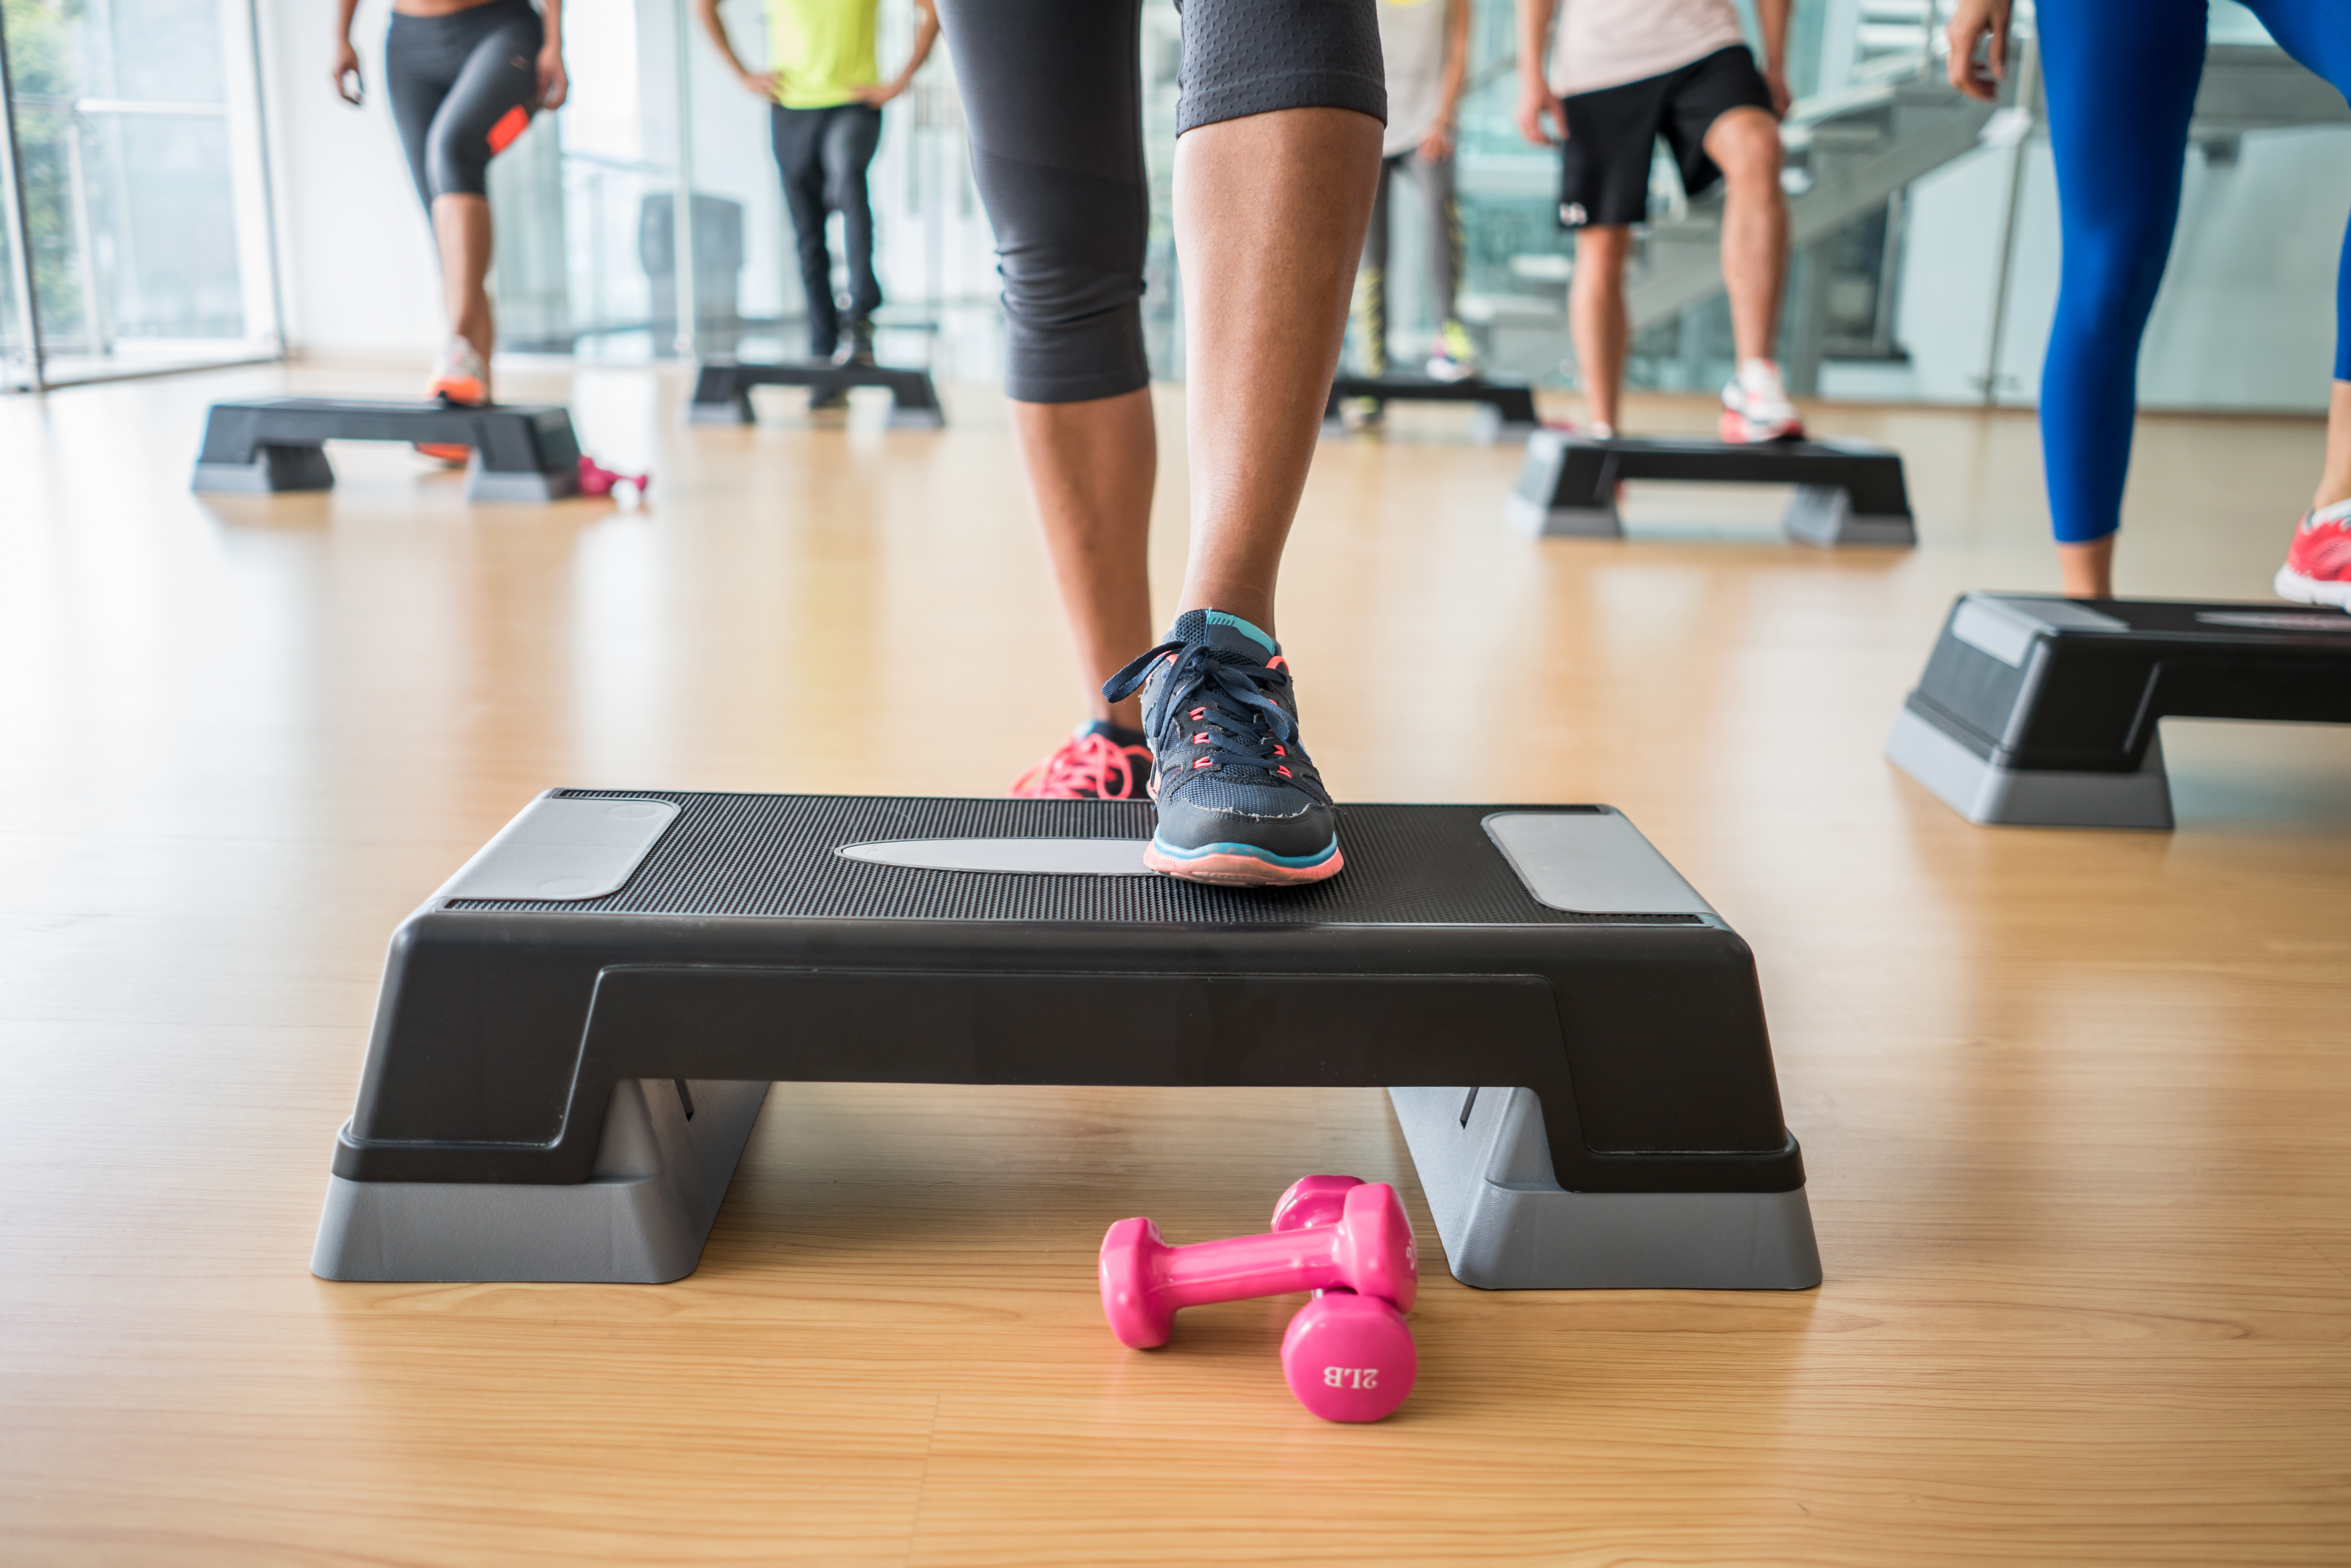 10 Reasons Being A Fitness Instructor Should Be Your Side Hustle The Washington Post